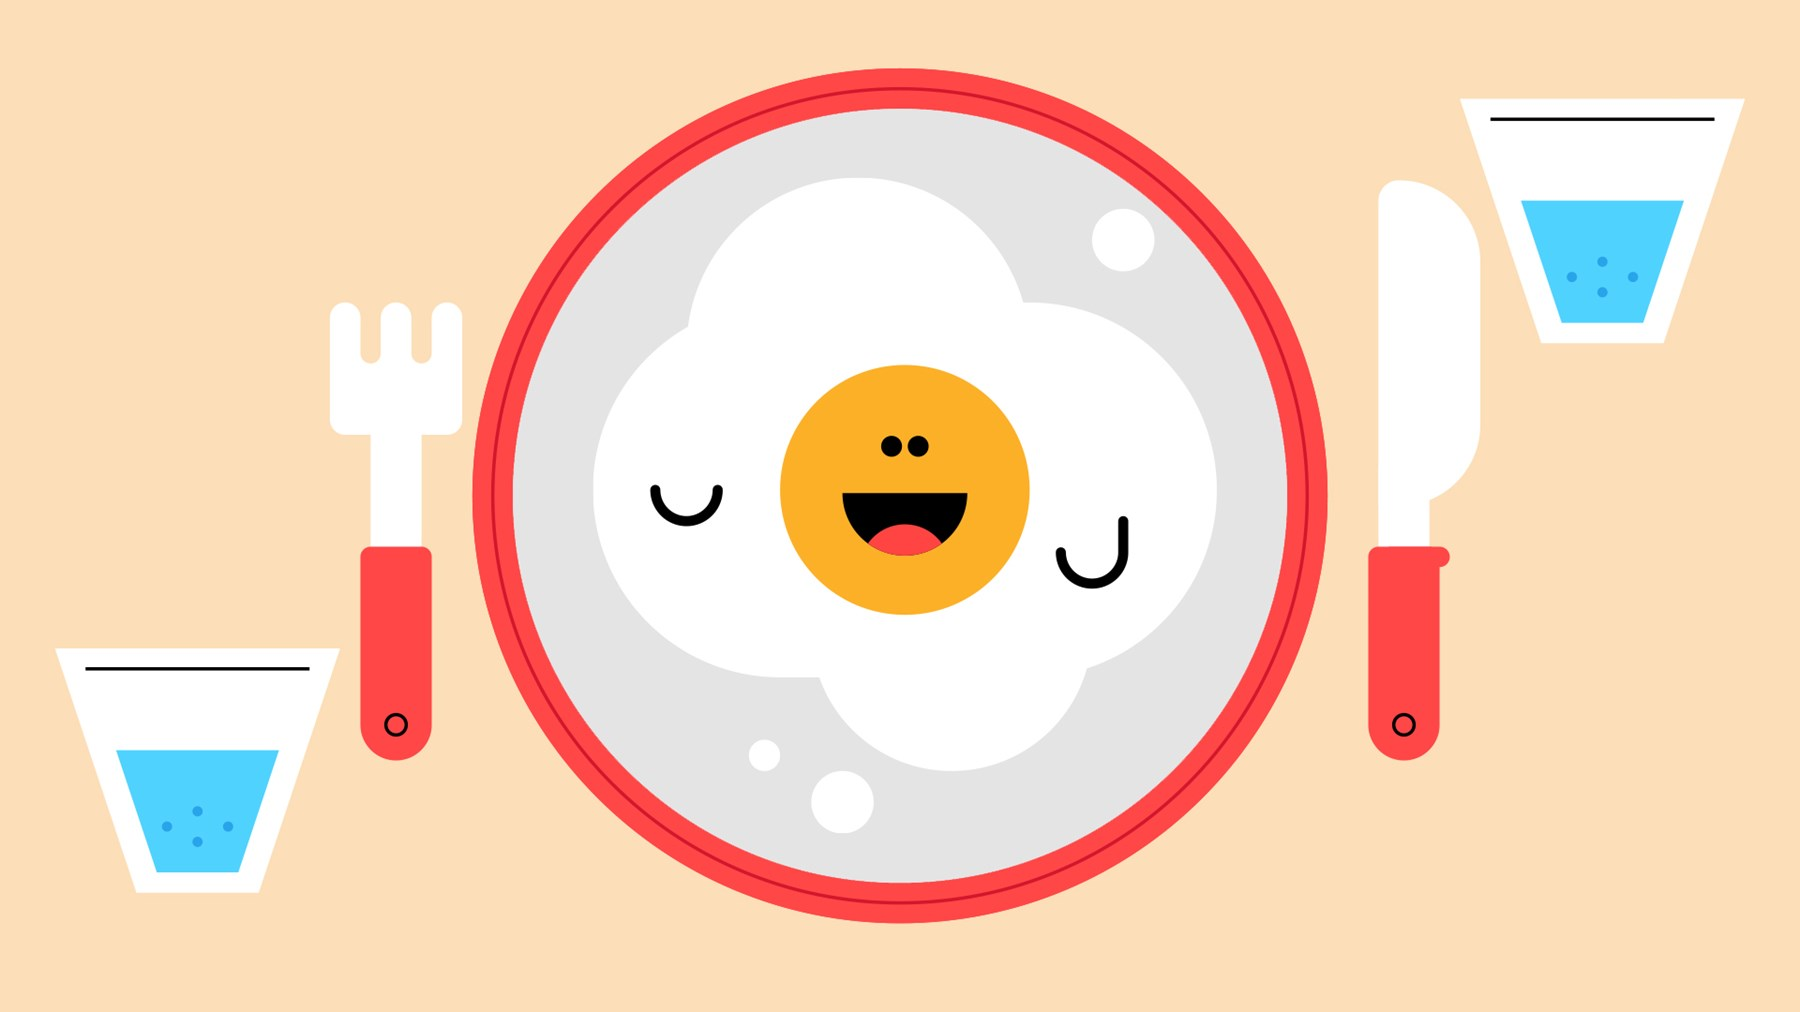 A fried egg is placed in the centre of a plate. It has googly eyes and a large smile.